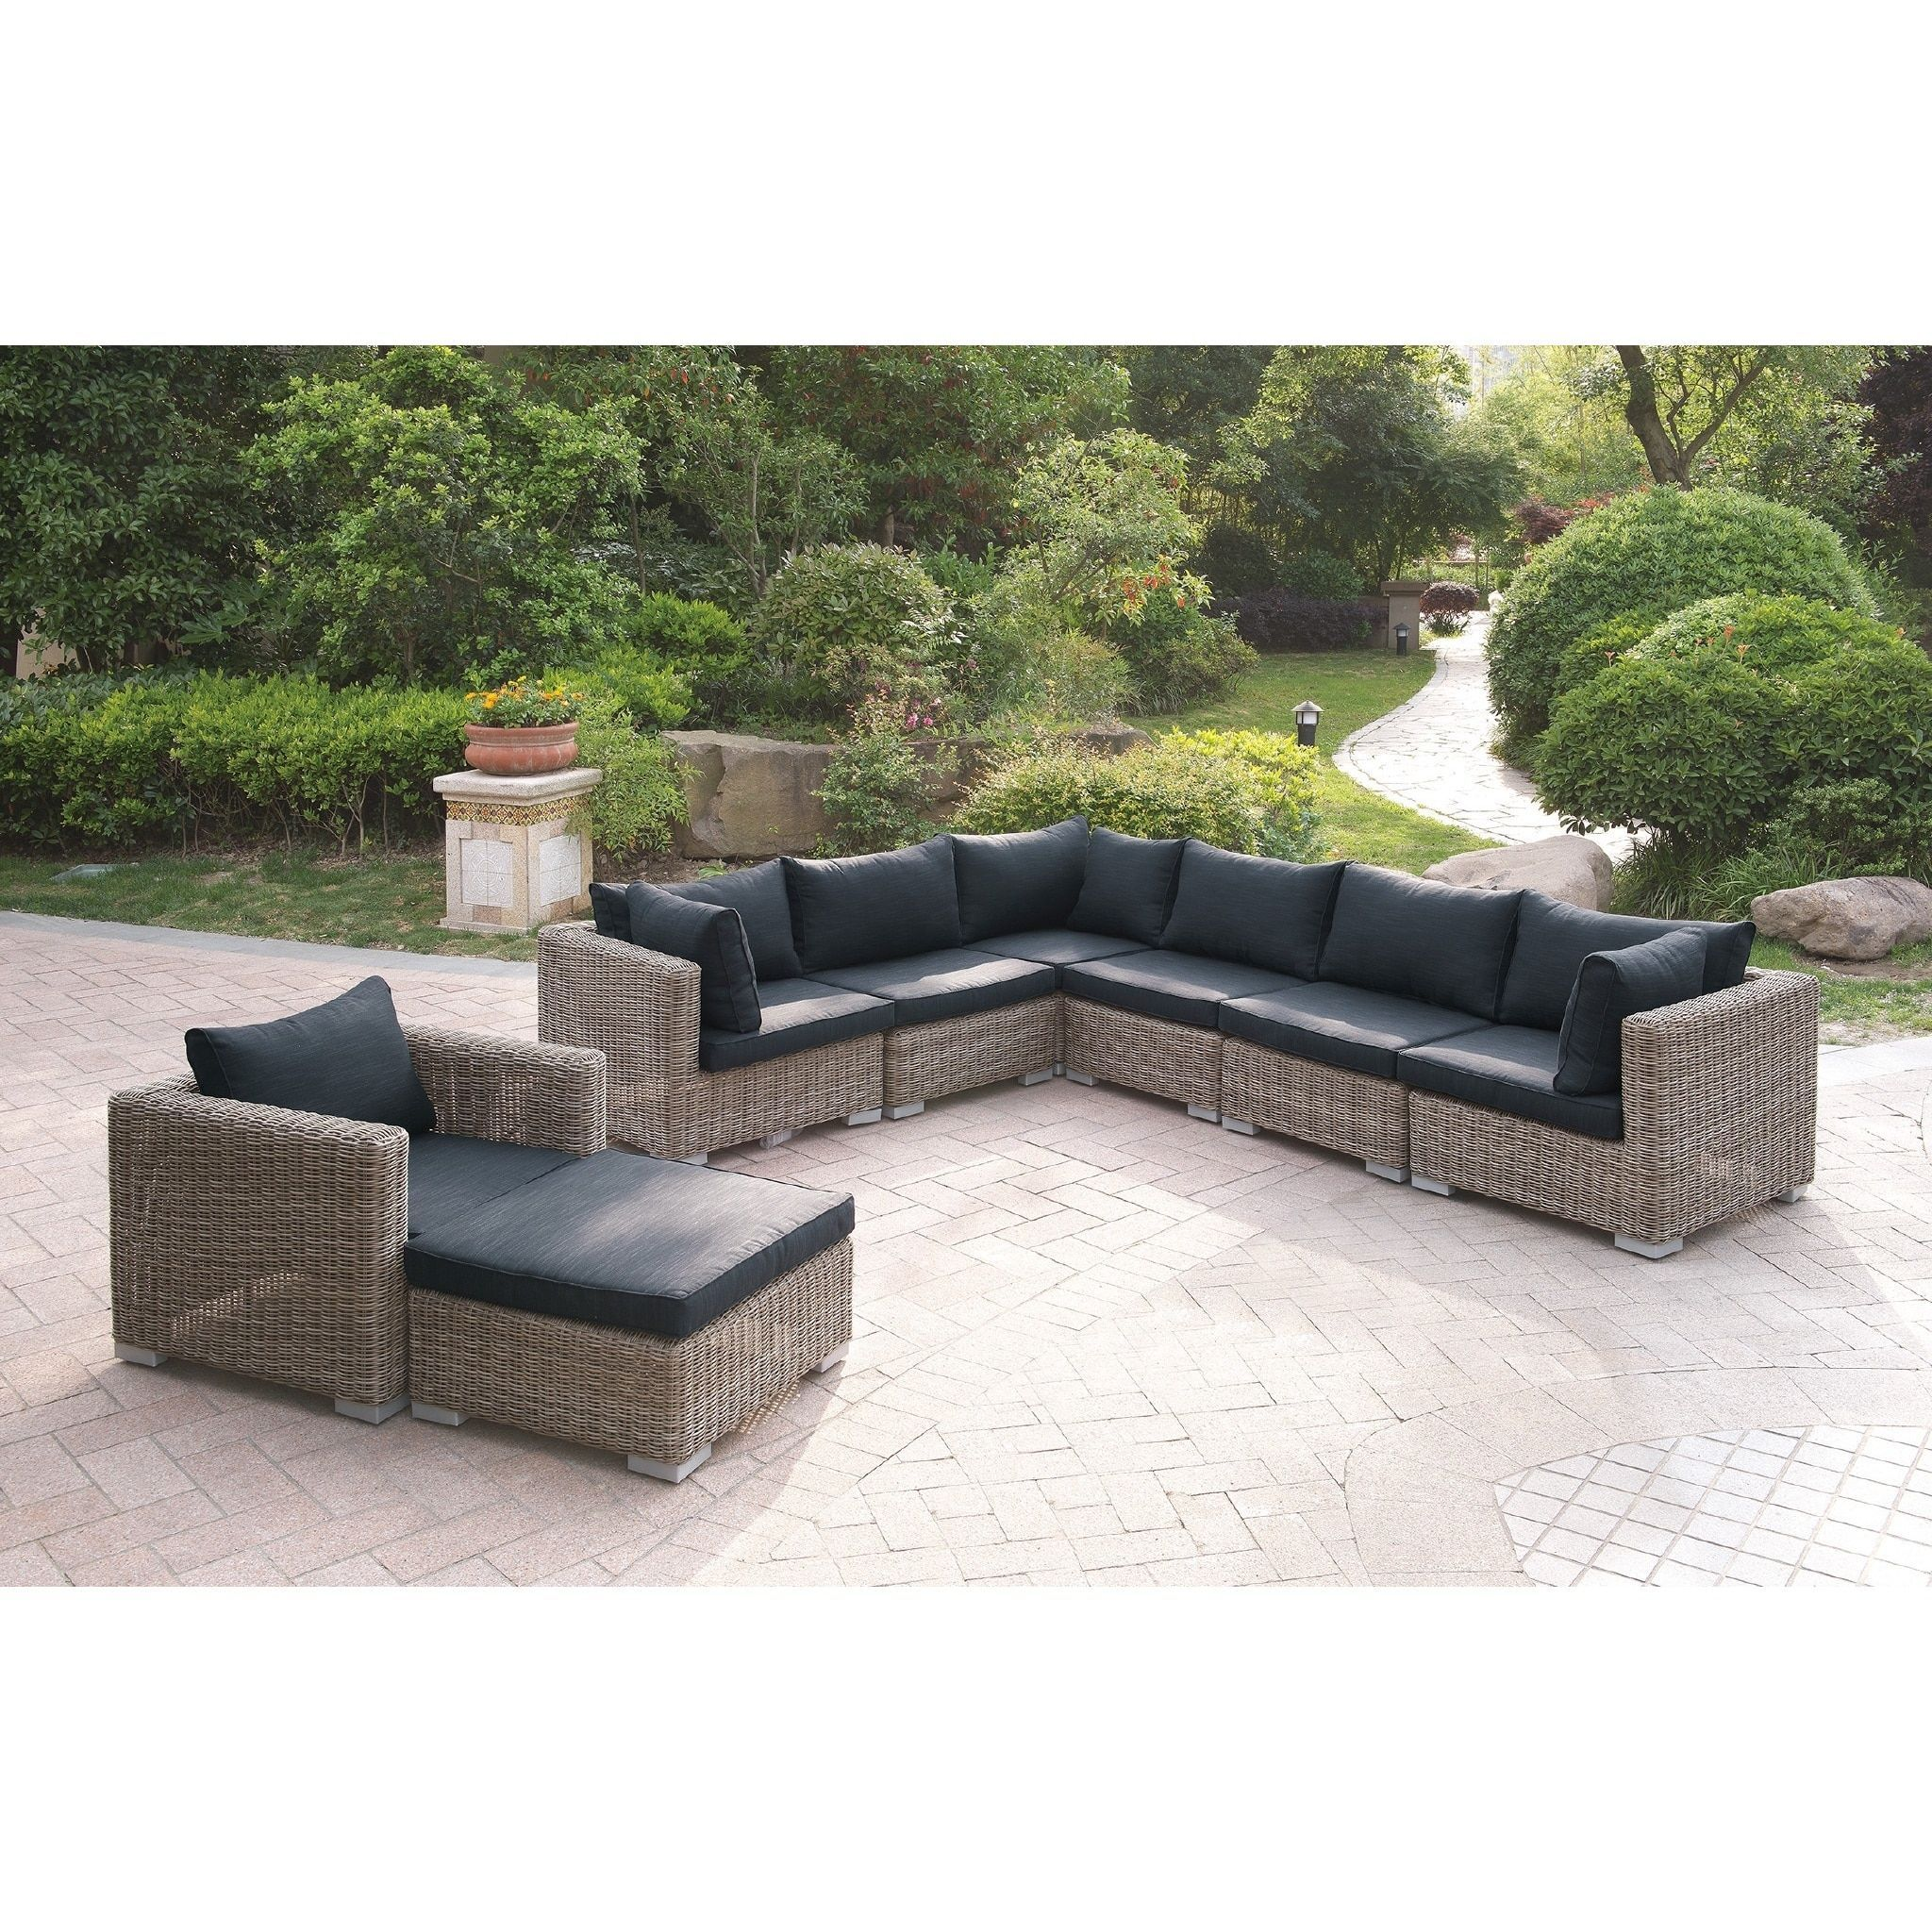 Harvey 8 Piece Patio Sectional Set II with Cushions Brown Size